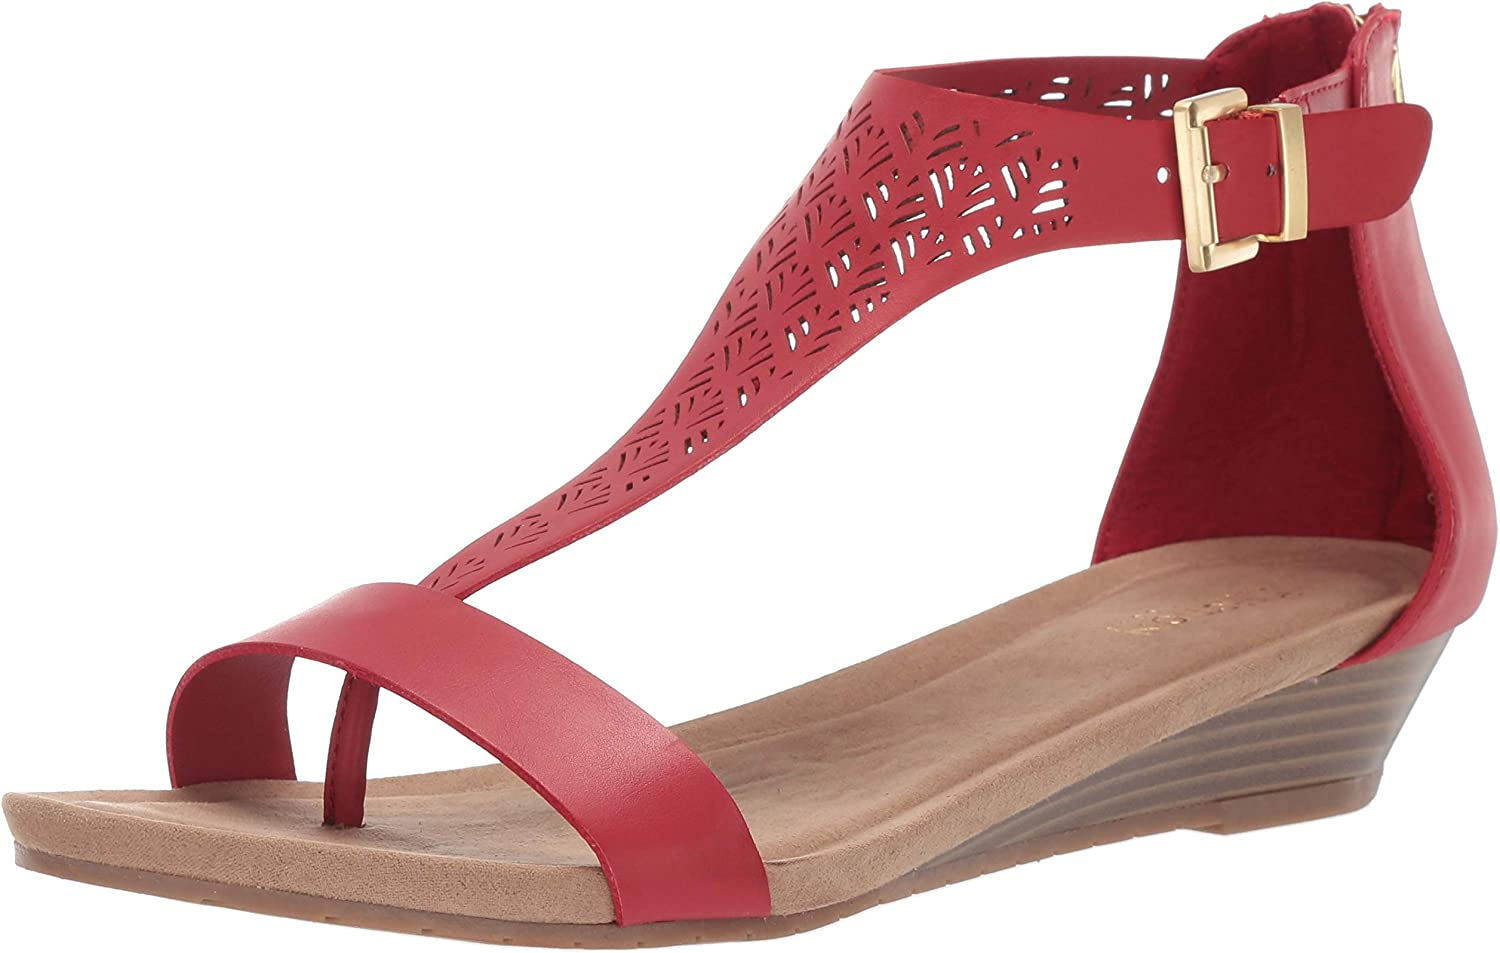 Kenneth Cole REACTION Womens Great City 3 T-Strap Low Wedge Sandal Wedge Sandal